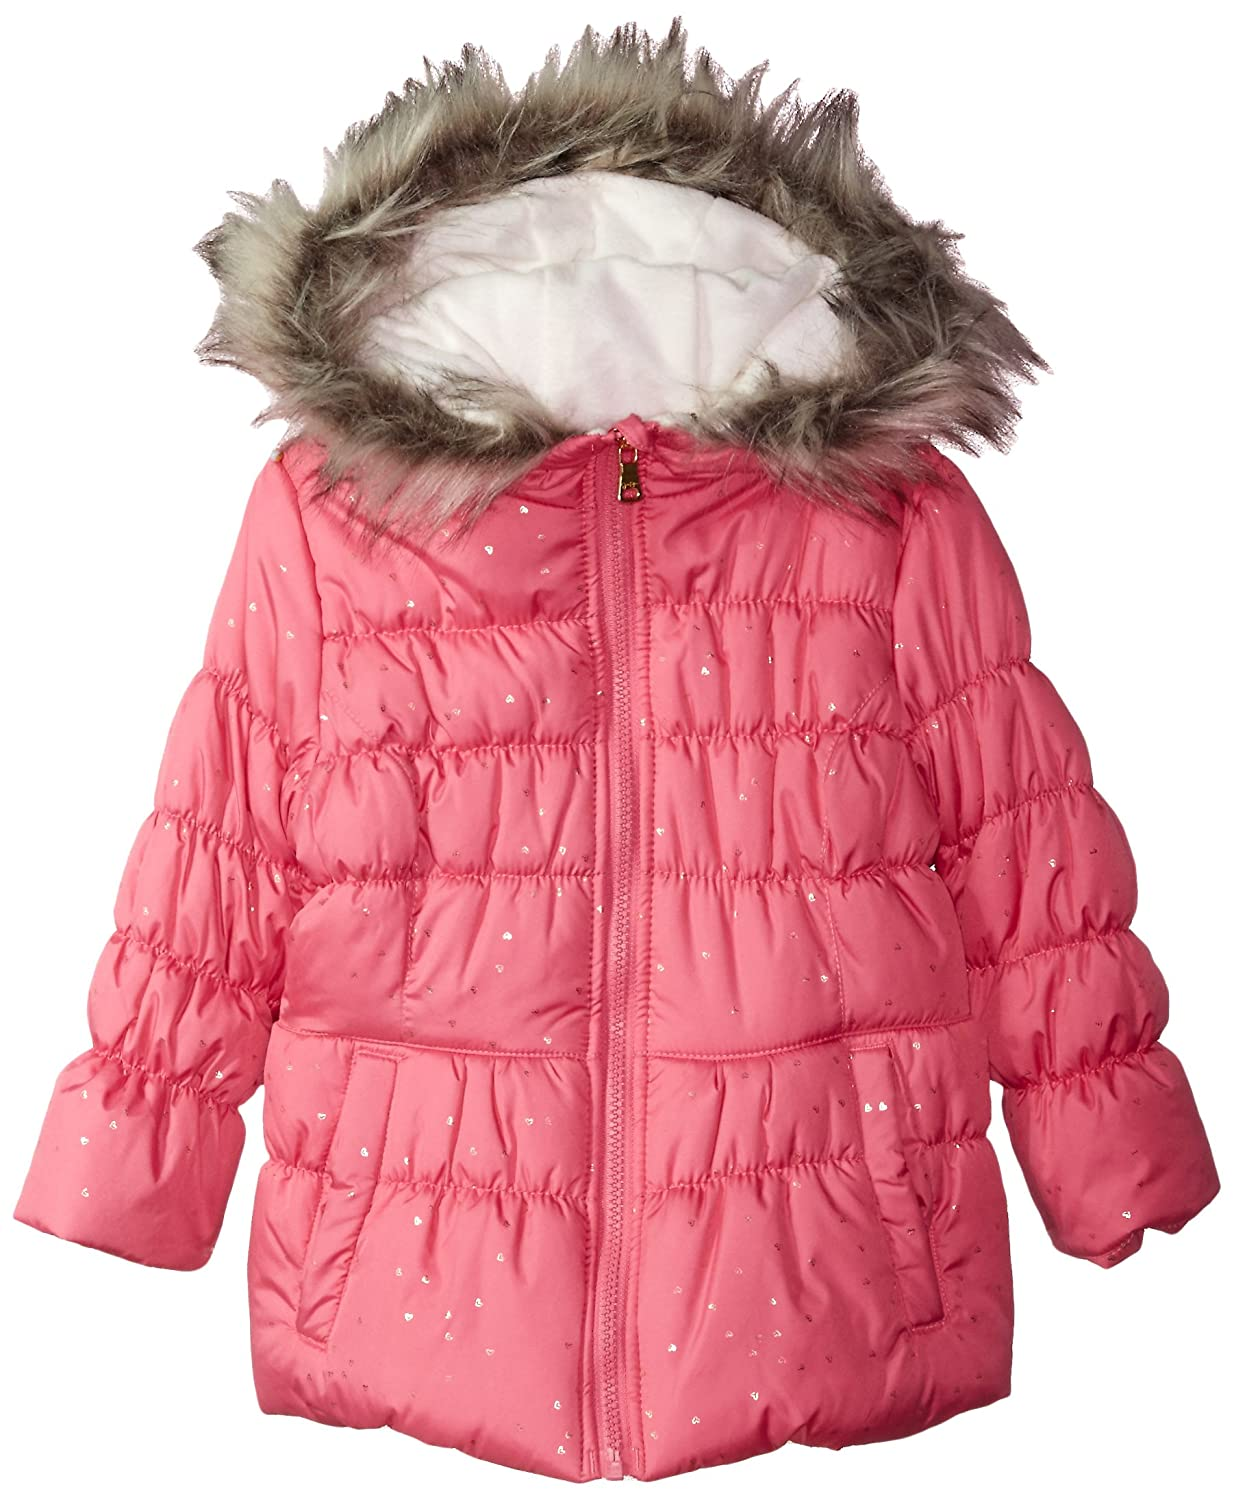 Jessica Simpson Girls Little Cozy Trimmed Hooded Jacket Coat with Mittens